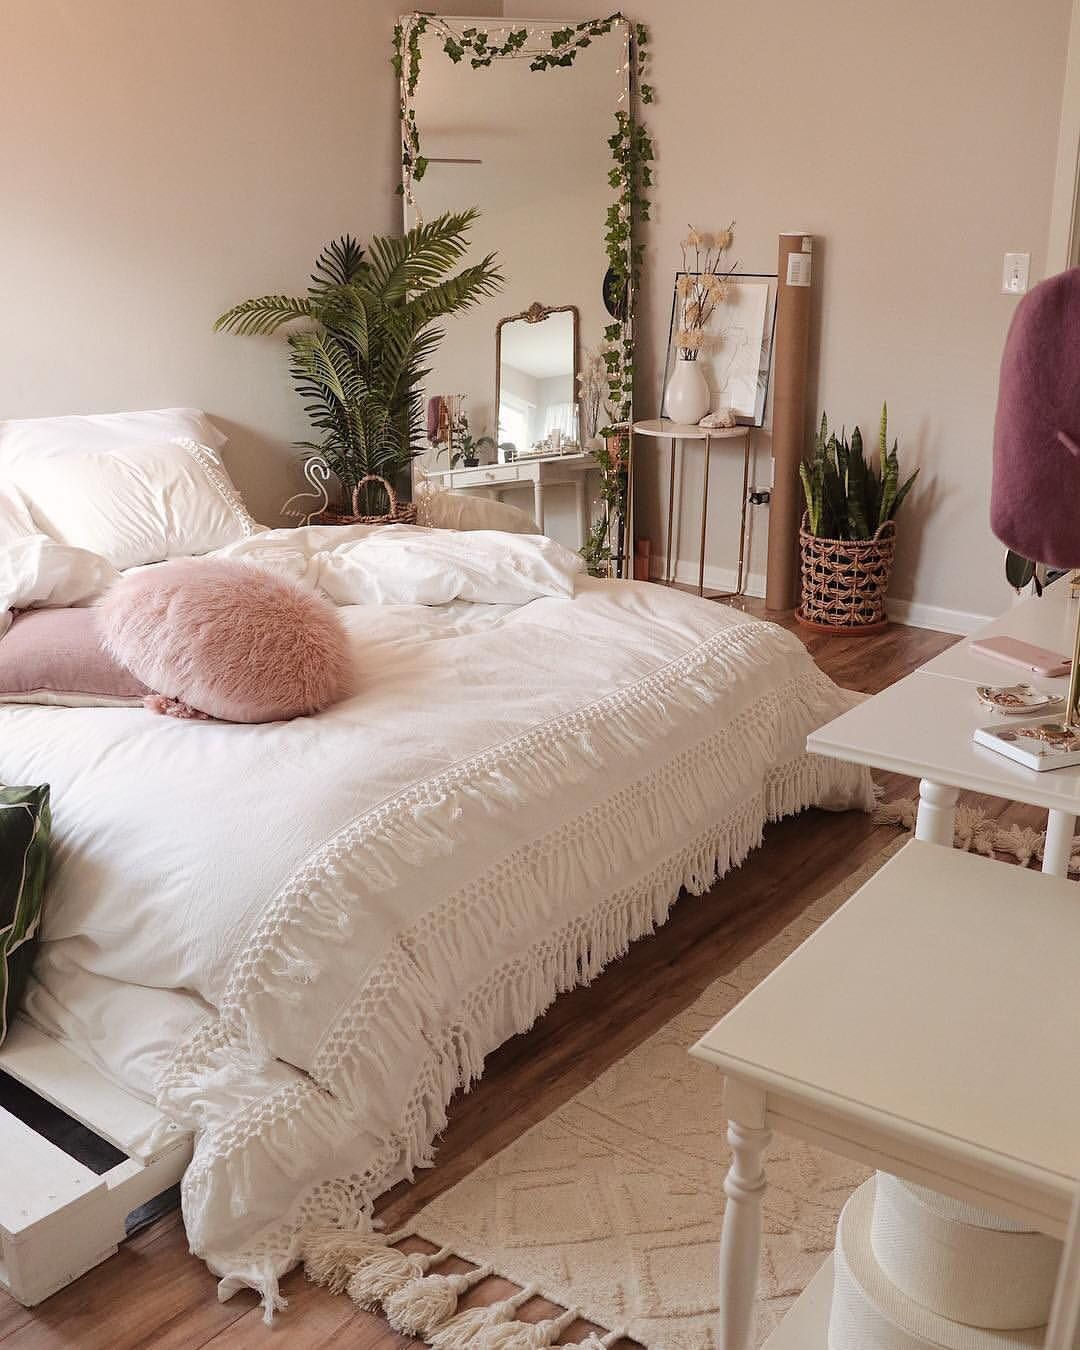 Thanks For The Bedroom Inspo Celeste Escarcega Bedroom Decor